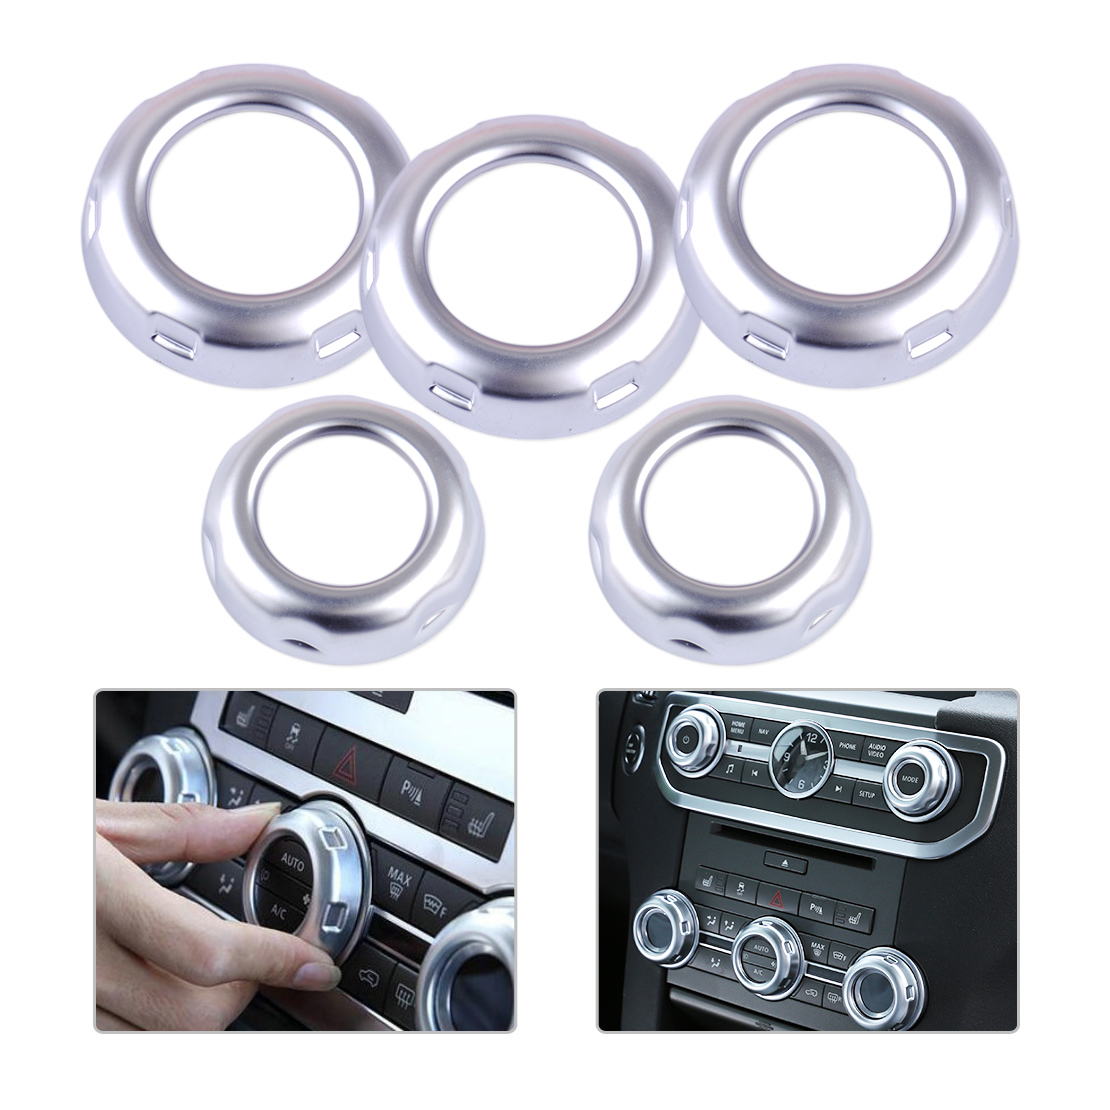 beler 5Pc Chrome Dashboard Console Switch Button Ring Cover Trim Fit for Land Rover Discovery 4 Range Rover Sport Car Styling car abs matte chrome center console panel molding trim for land rover discovery 4 2010 2016 accessories car styling